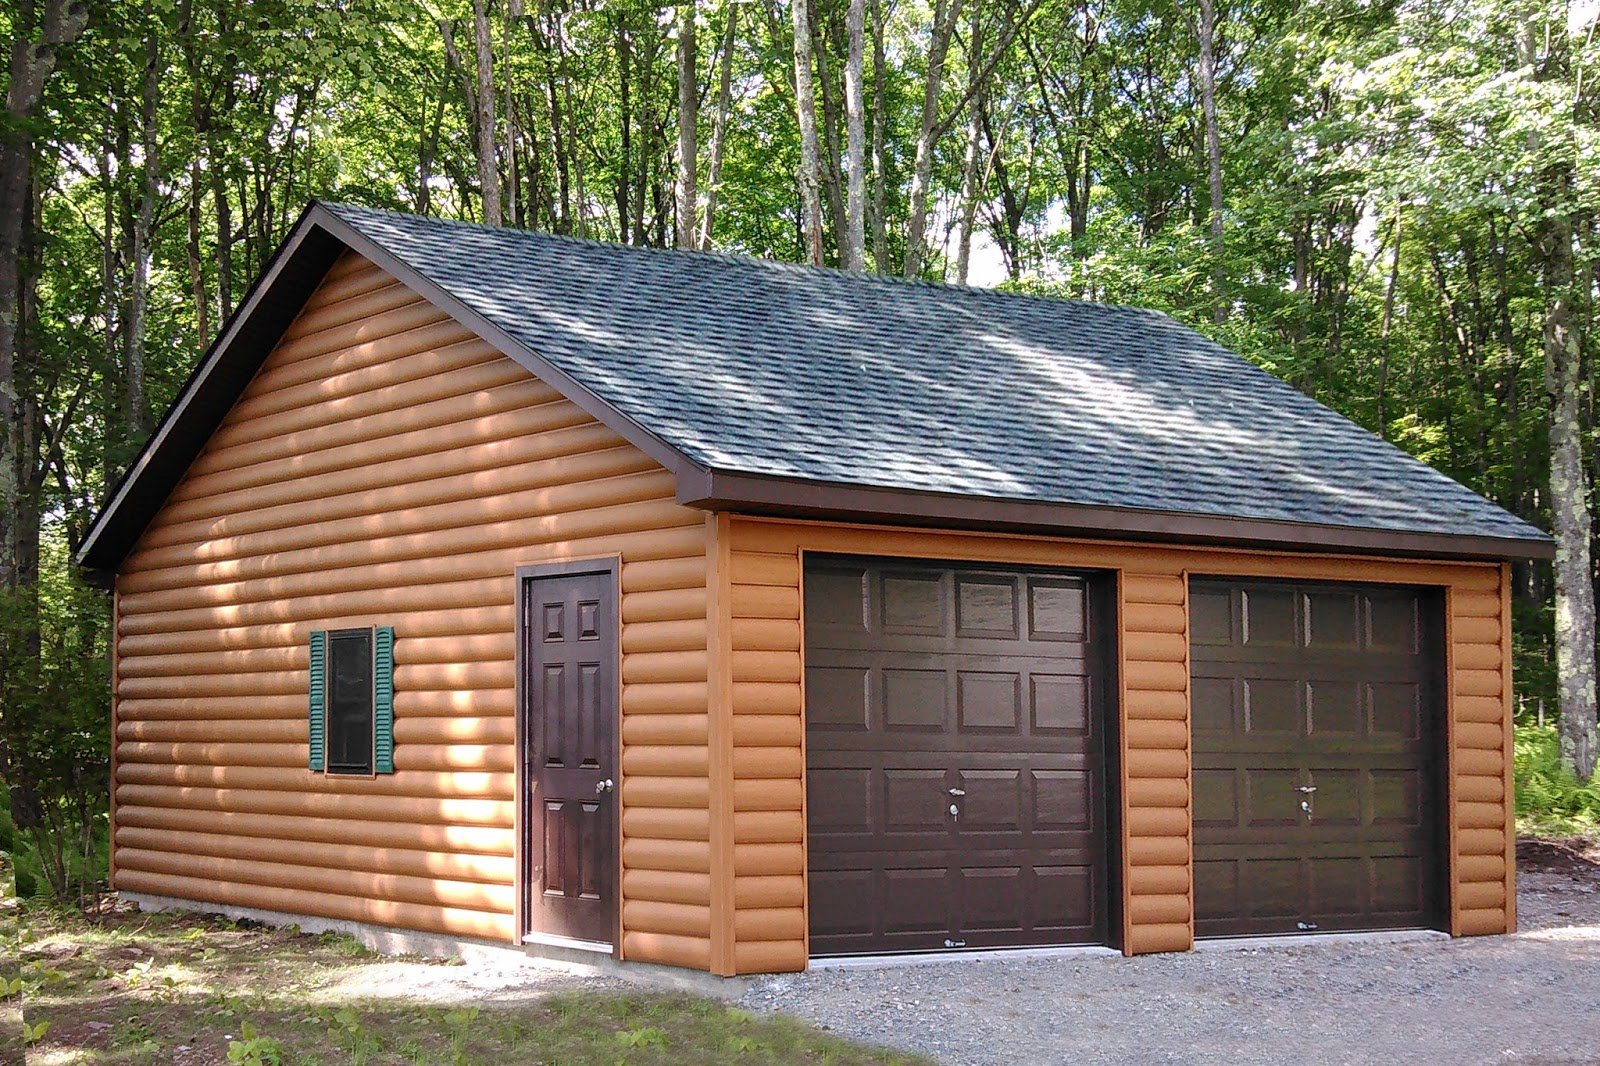 Prefab car garages for sale in pa nj ny ct de md va for Prefab 2 car detached garage